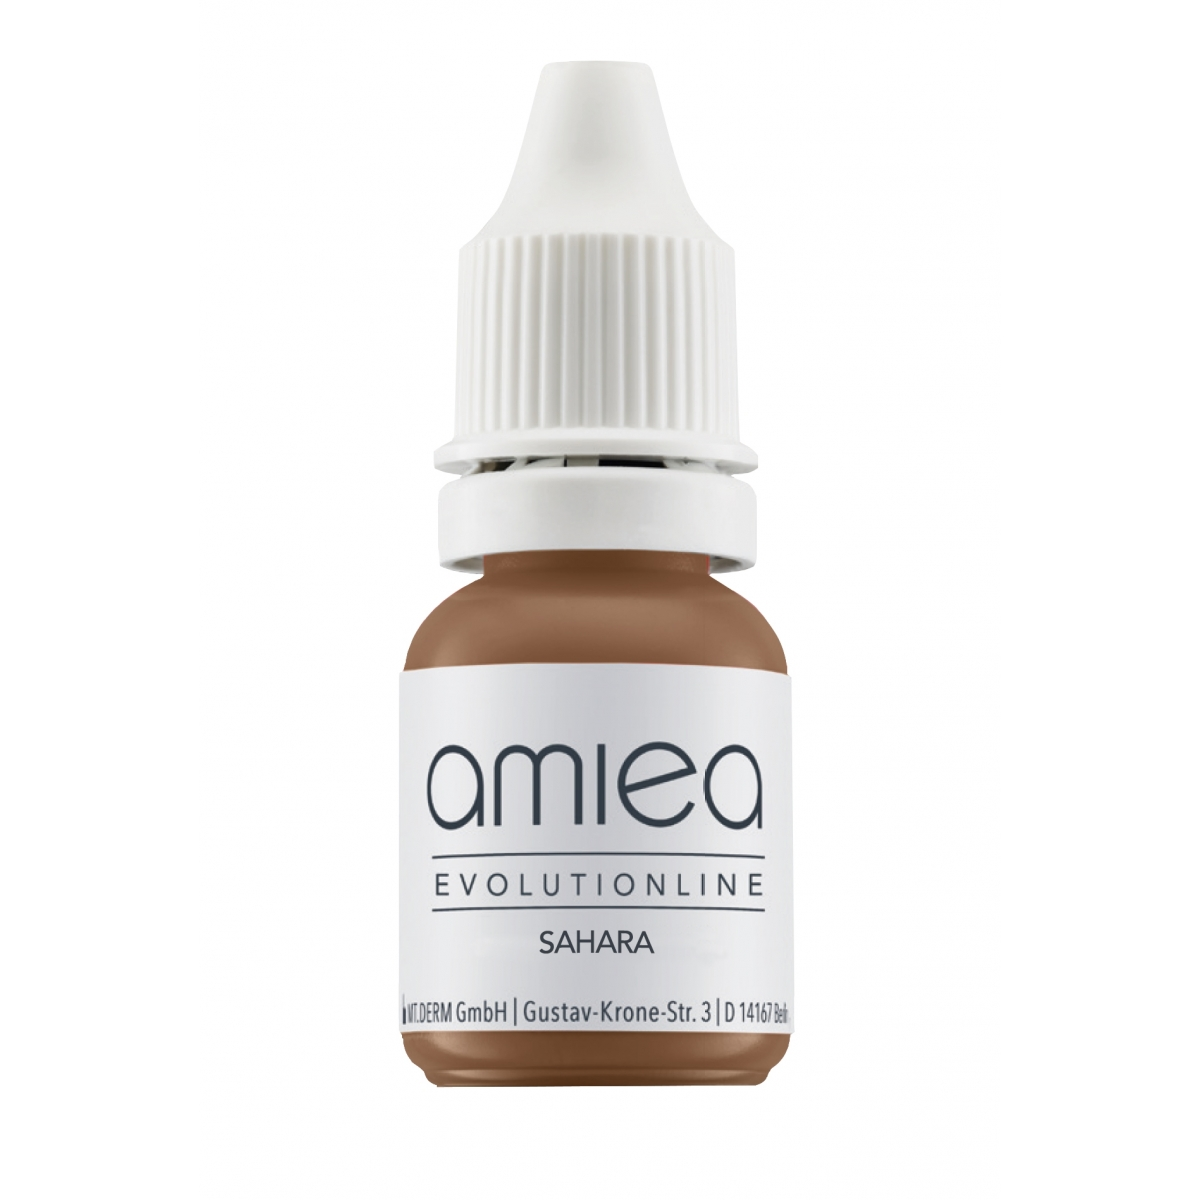 Evolutionline (10 ml) - PIGMENTS AMIEA EVOLUTIONLINE SAHARA, 10 ml